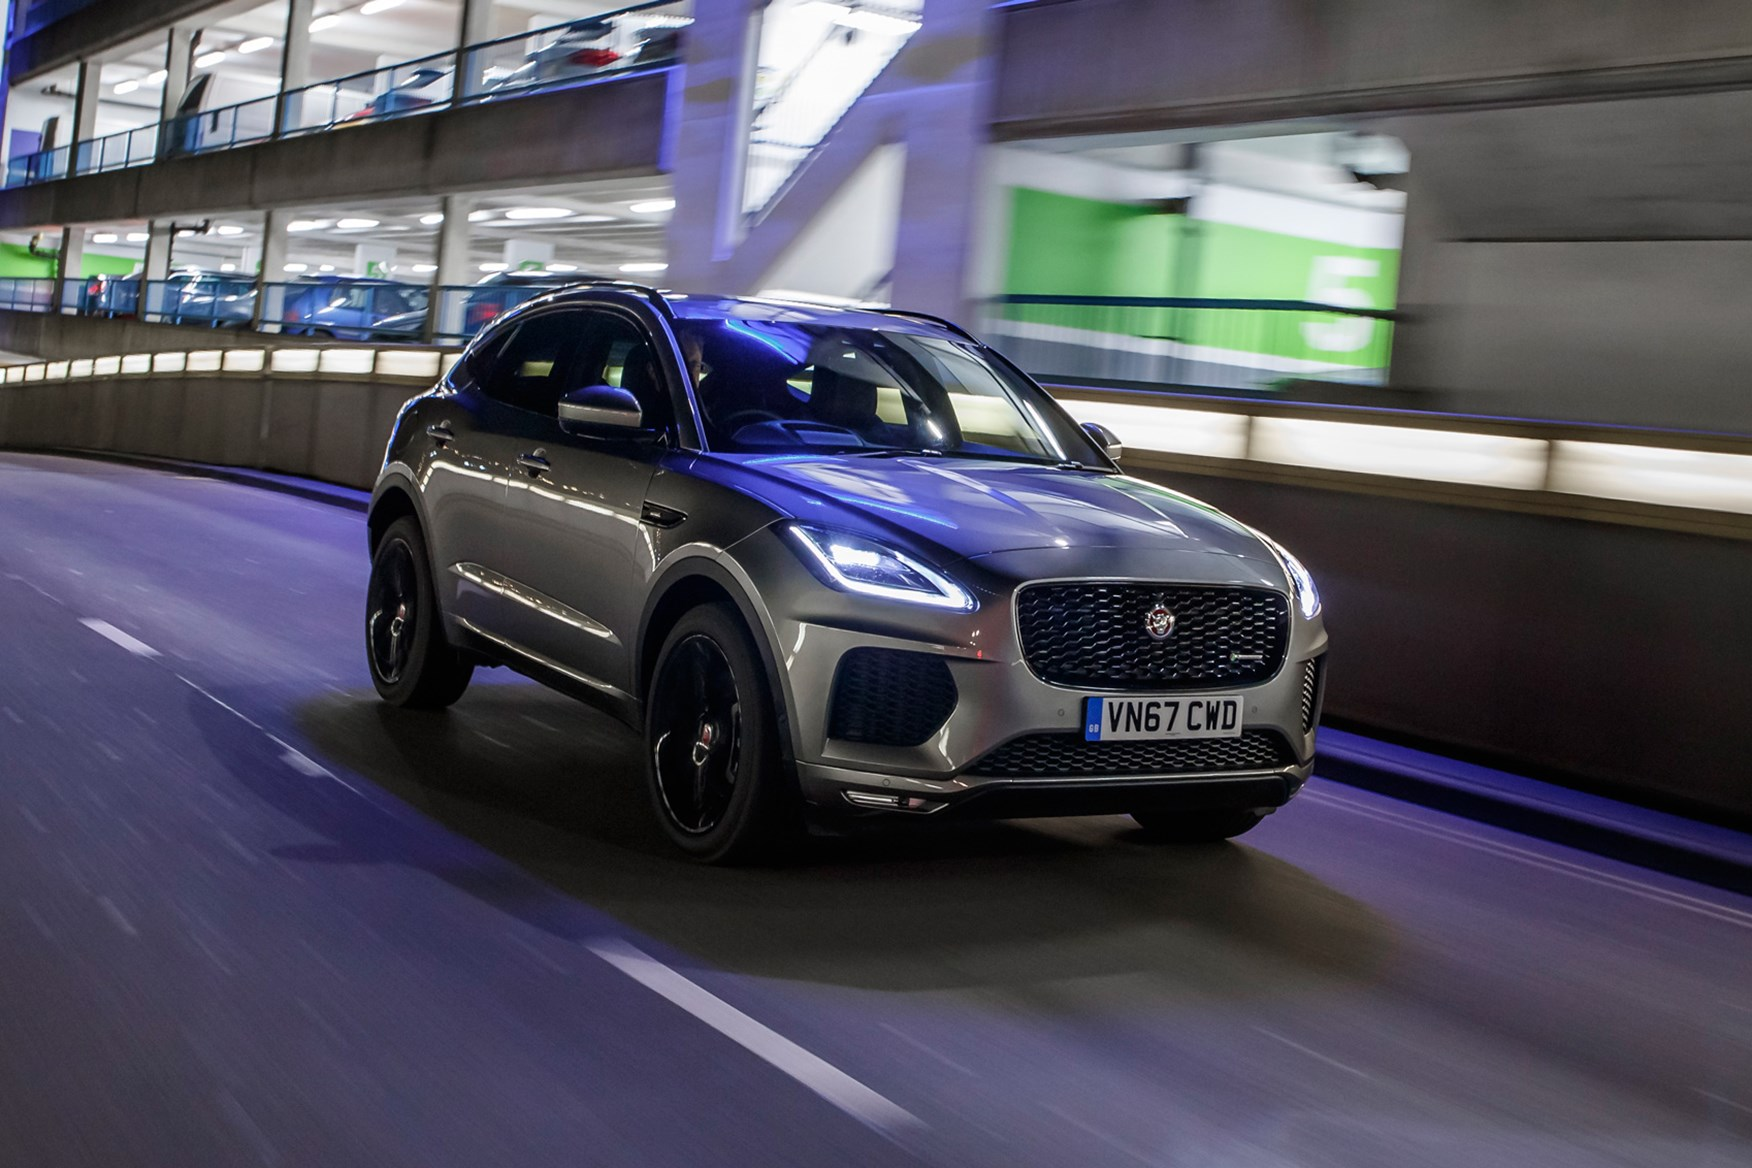 Interieur E Pace Jaguar Jaguar I Pace 2018 Review Specs Prices Pictures On Sale Date